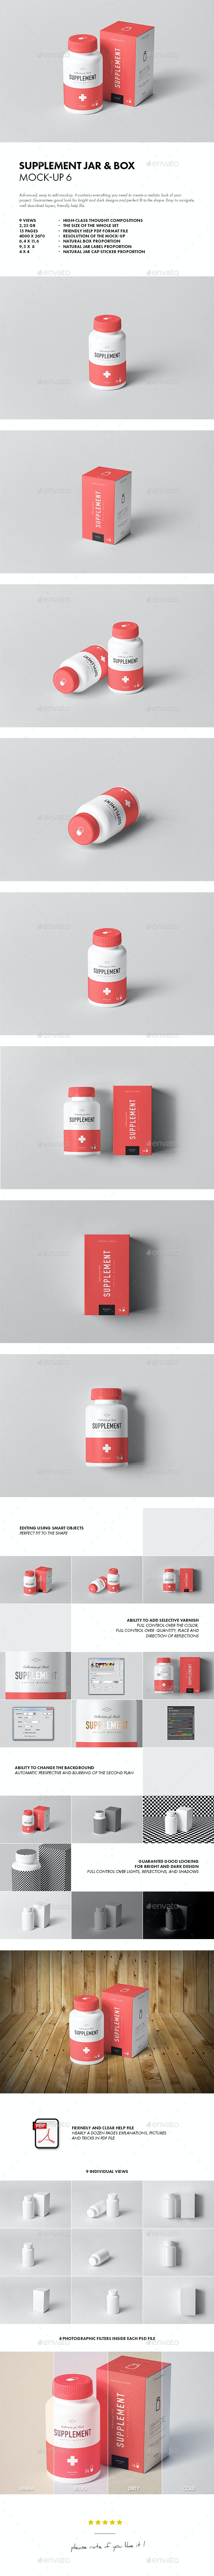 Supplement Jar & Box Mock-up 6 - Miscellaneous Packaging